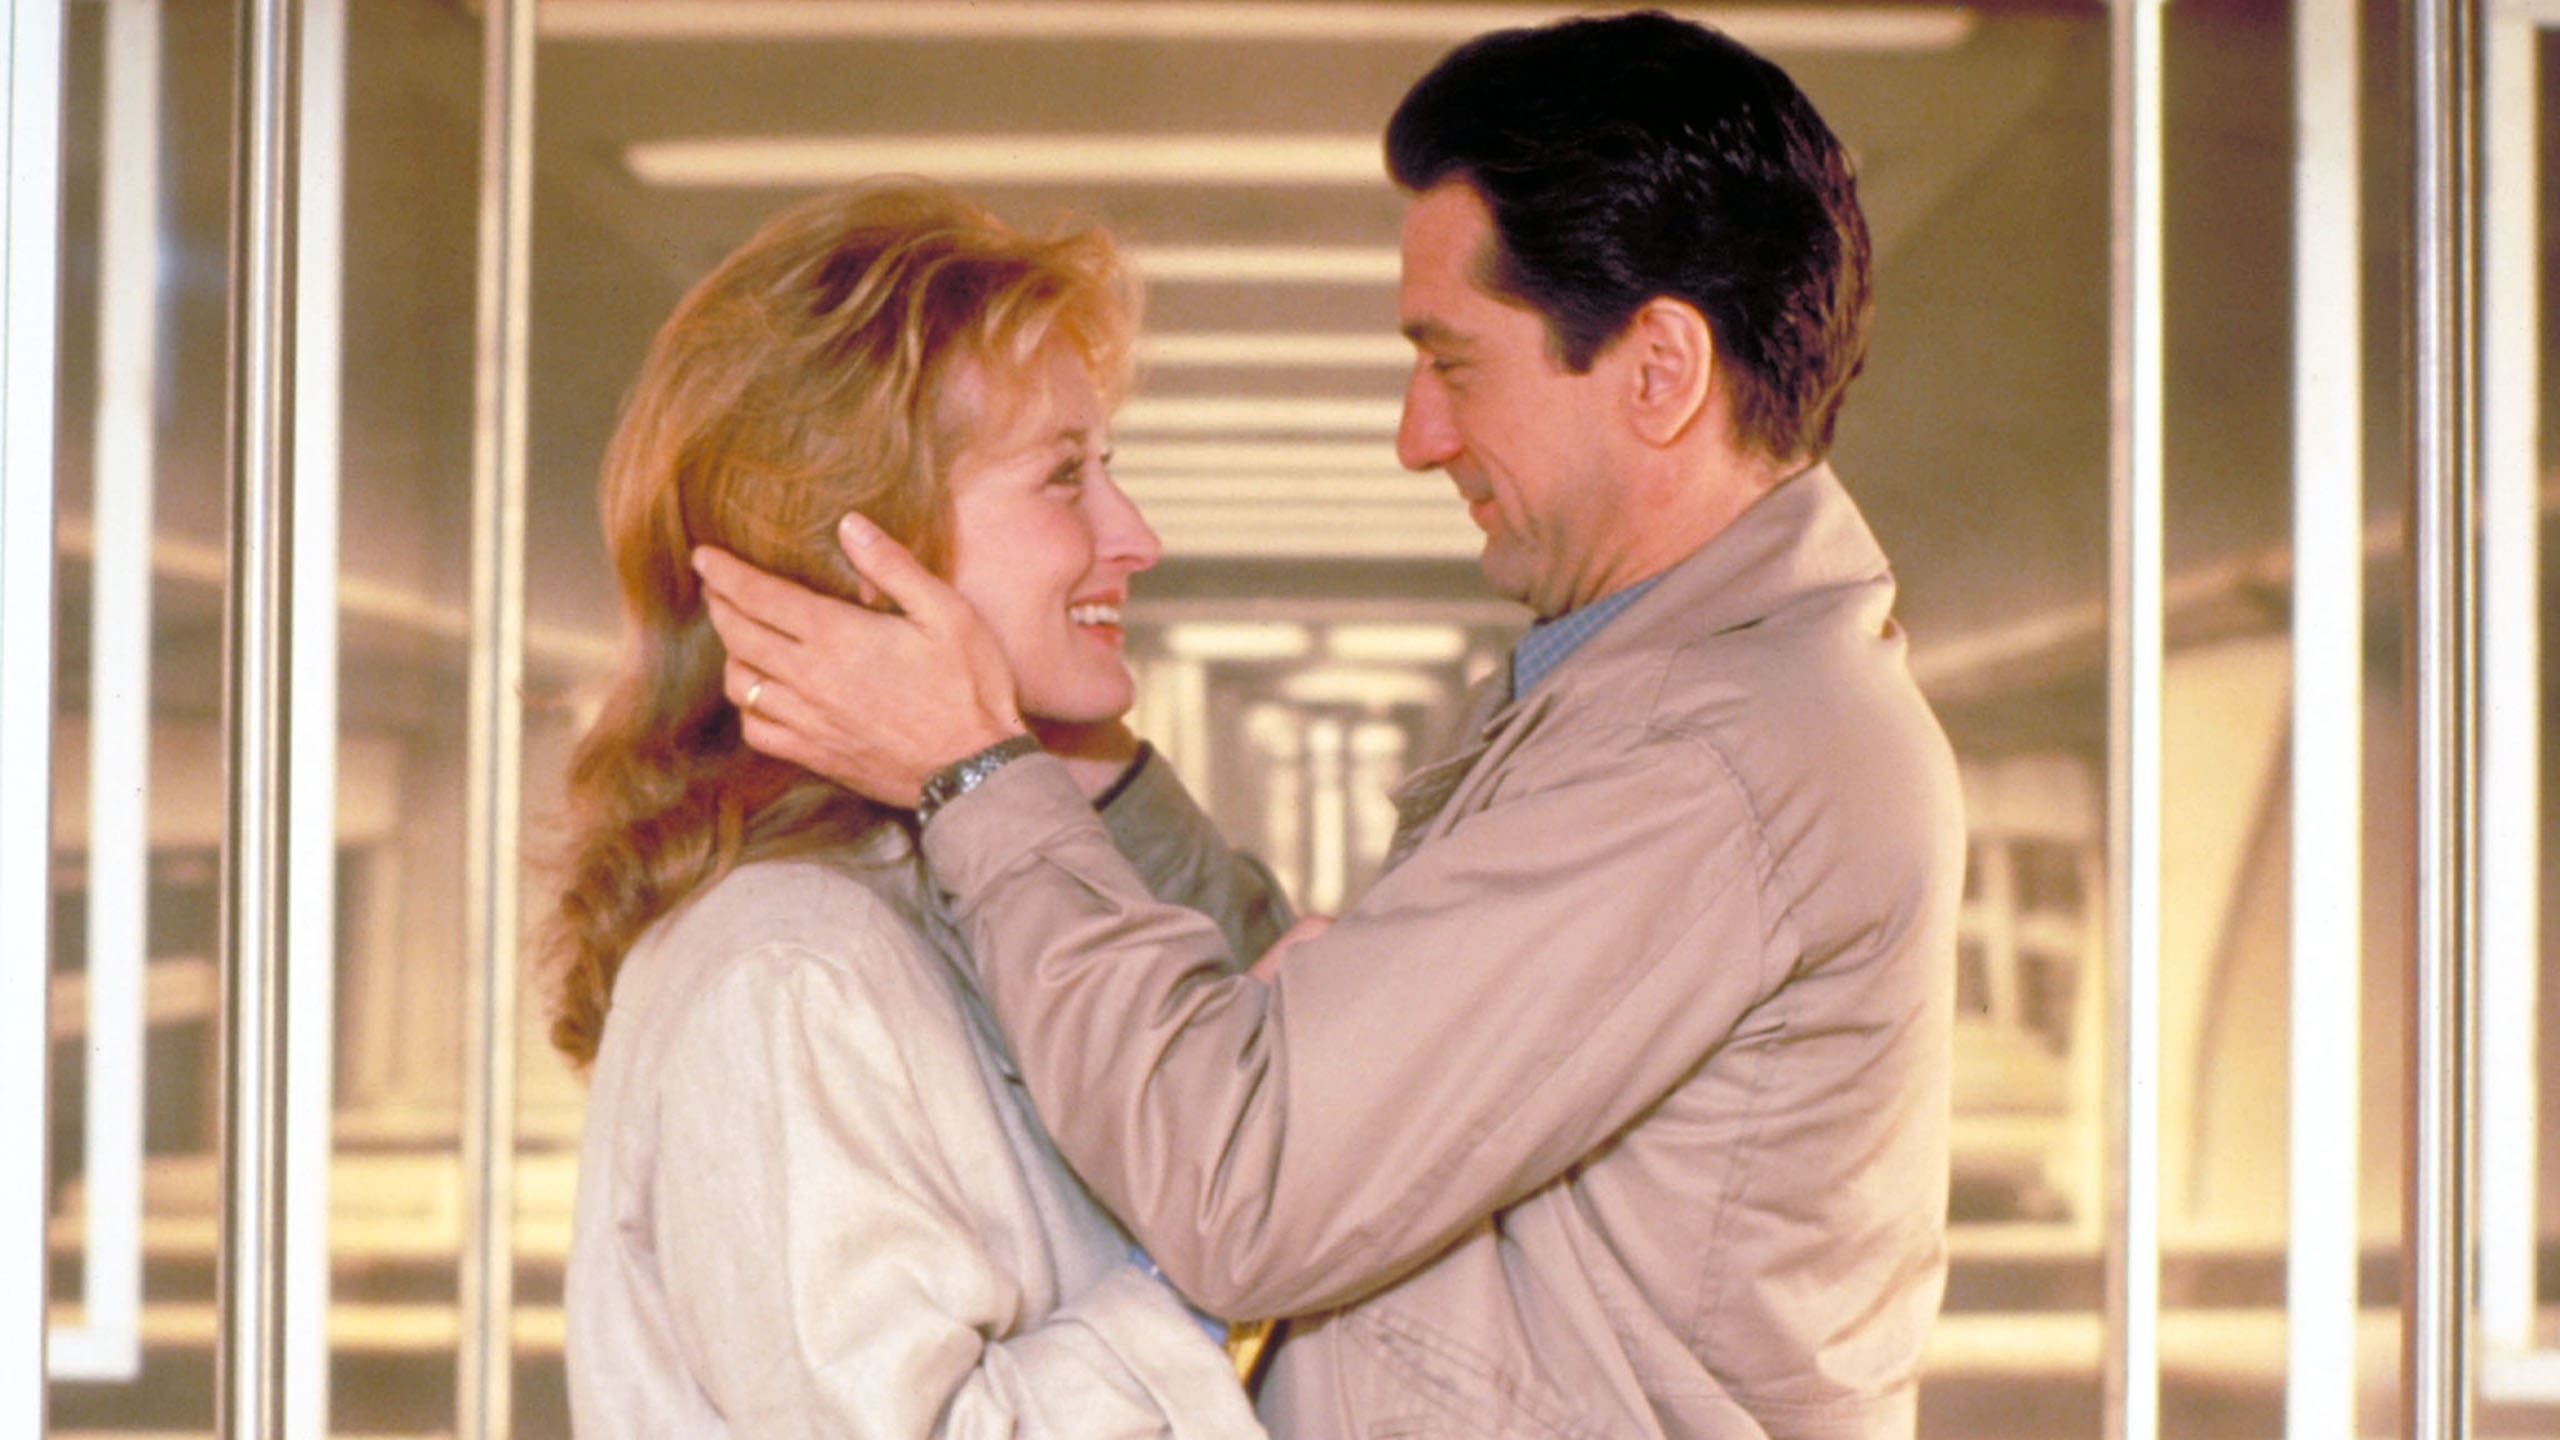 Still from the 1984 film Falling In Love, starring Robert DeNiro and Meryl Streep, with a noticeable dearth of charm.